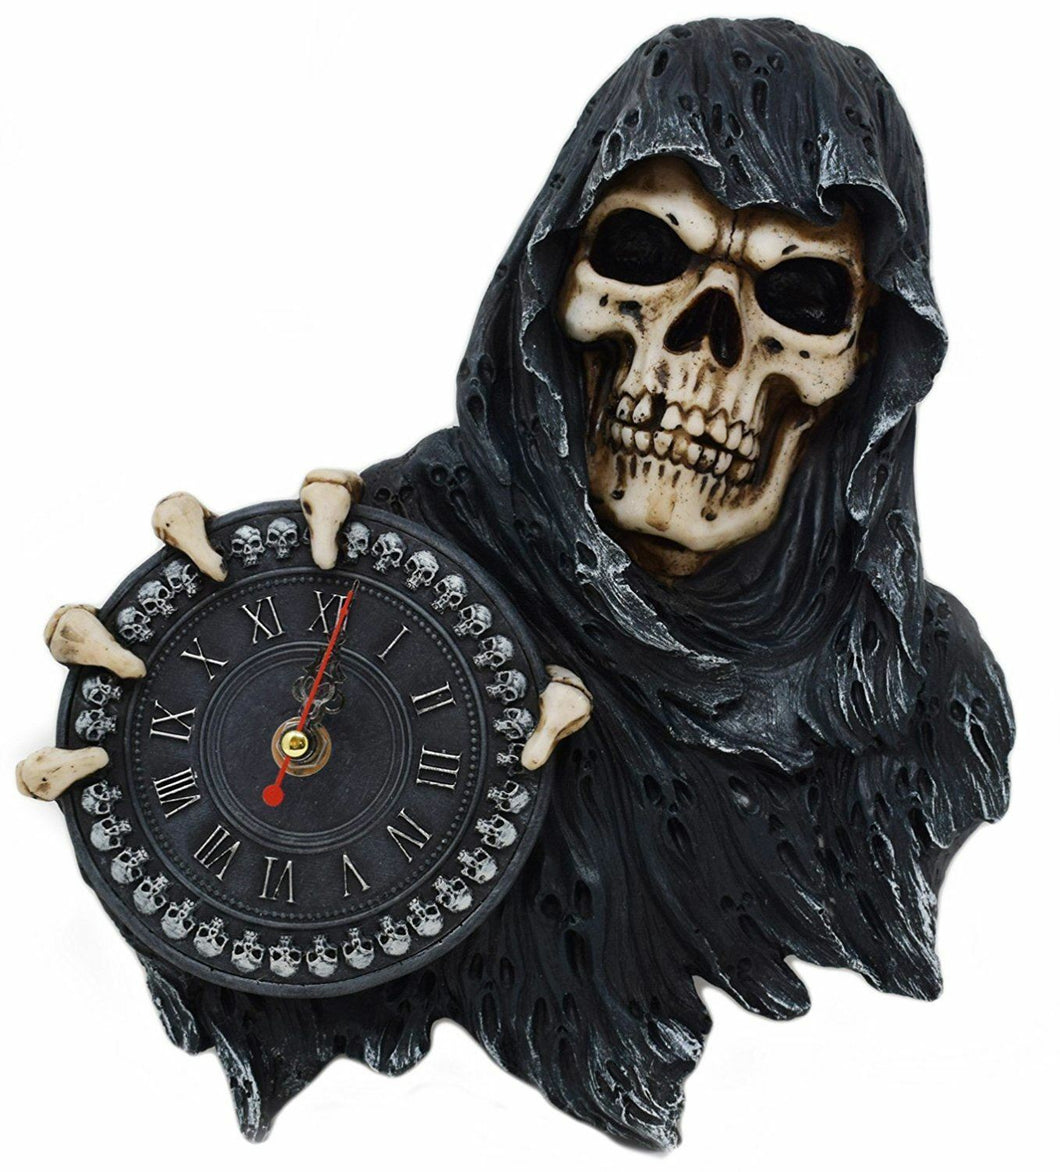 Grim Reaper Skeleton Wall Clock Gothic Gift Skull Ornament